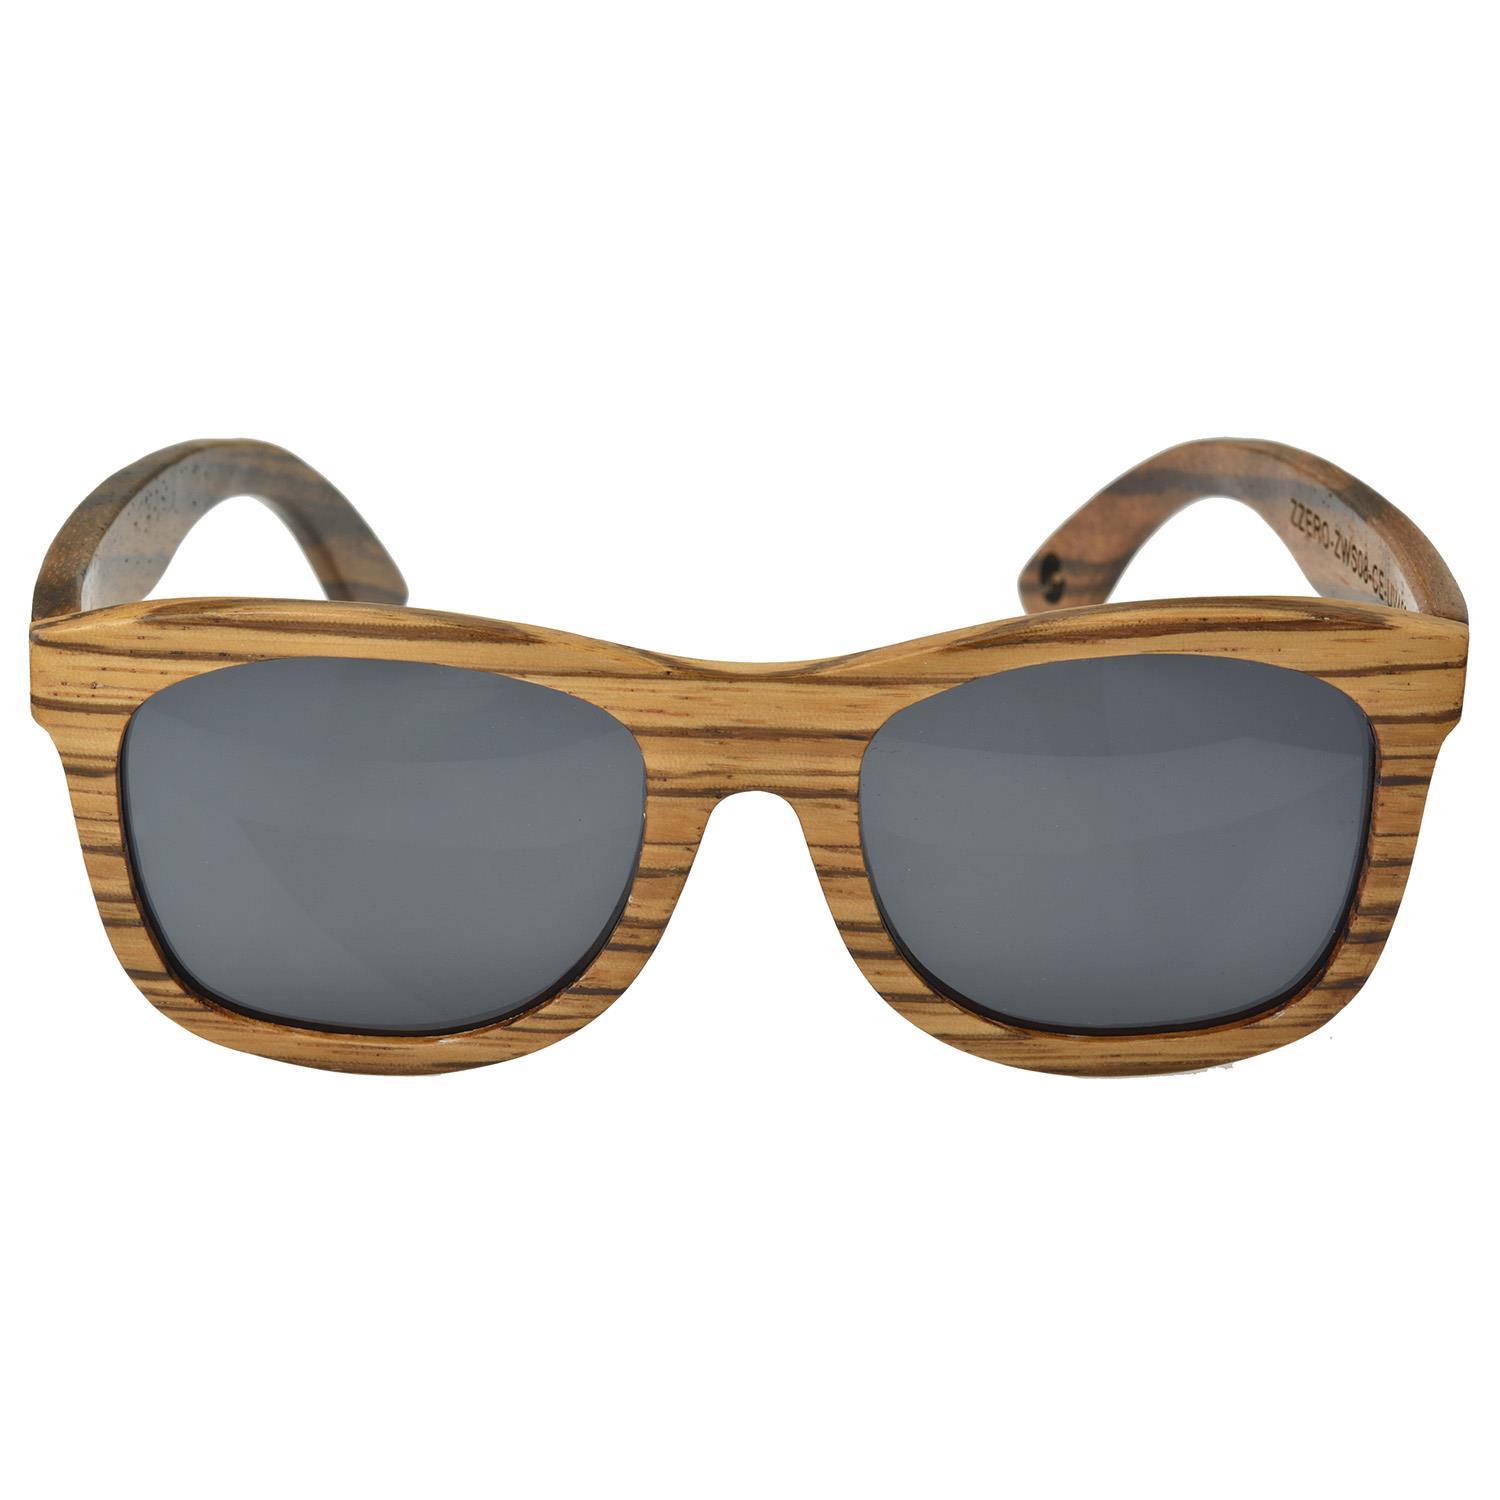 Zwr08a polarized for T green srl